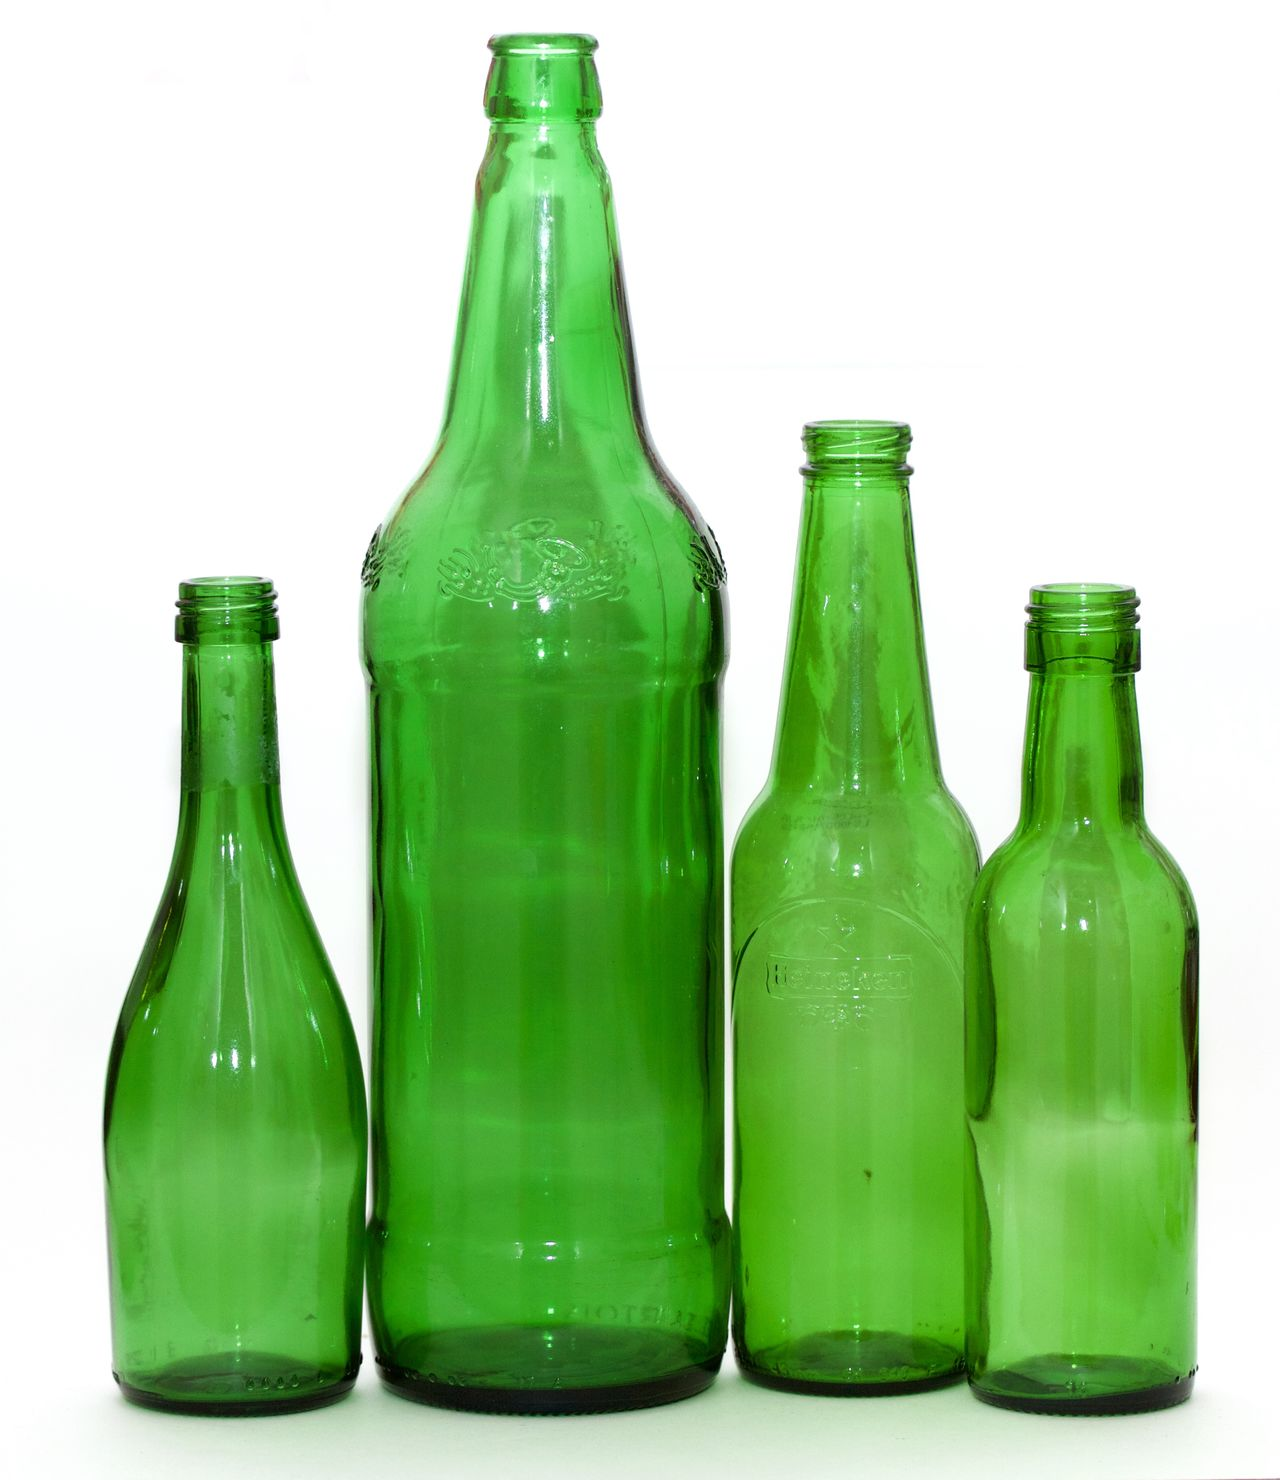 four green bottles on white background Bottle Close-up Food Green Bottles Green Color Industry No People Research Science Shape Shiny Studio Shot White Background